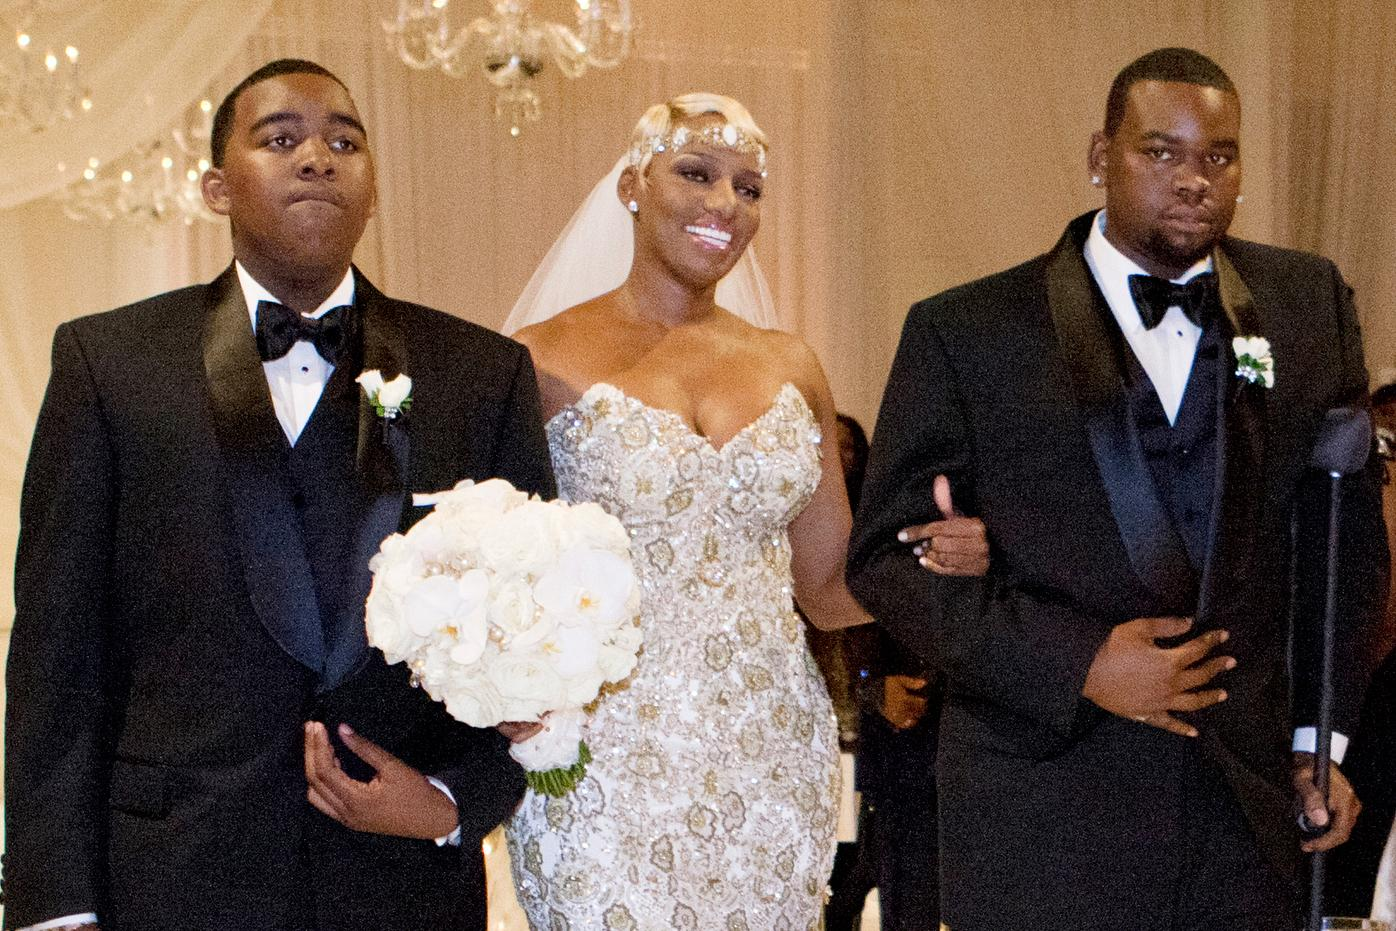 Nene Leakes Buys A House For Her Troubled Son And His Baby's Mother Have A Lot To Say About It